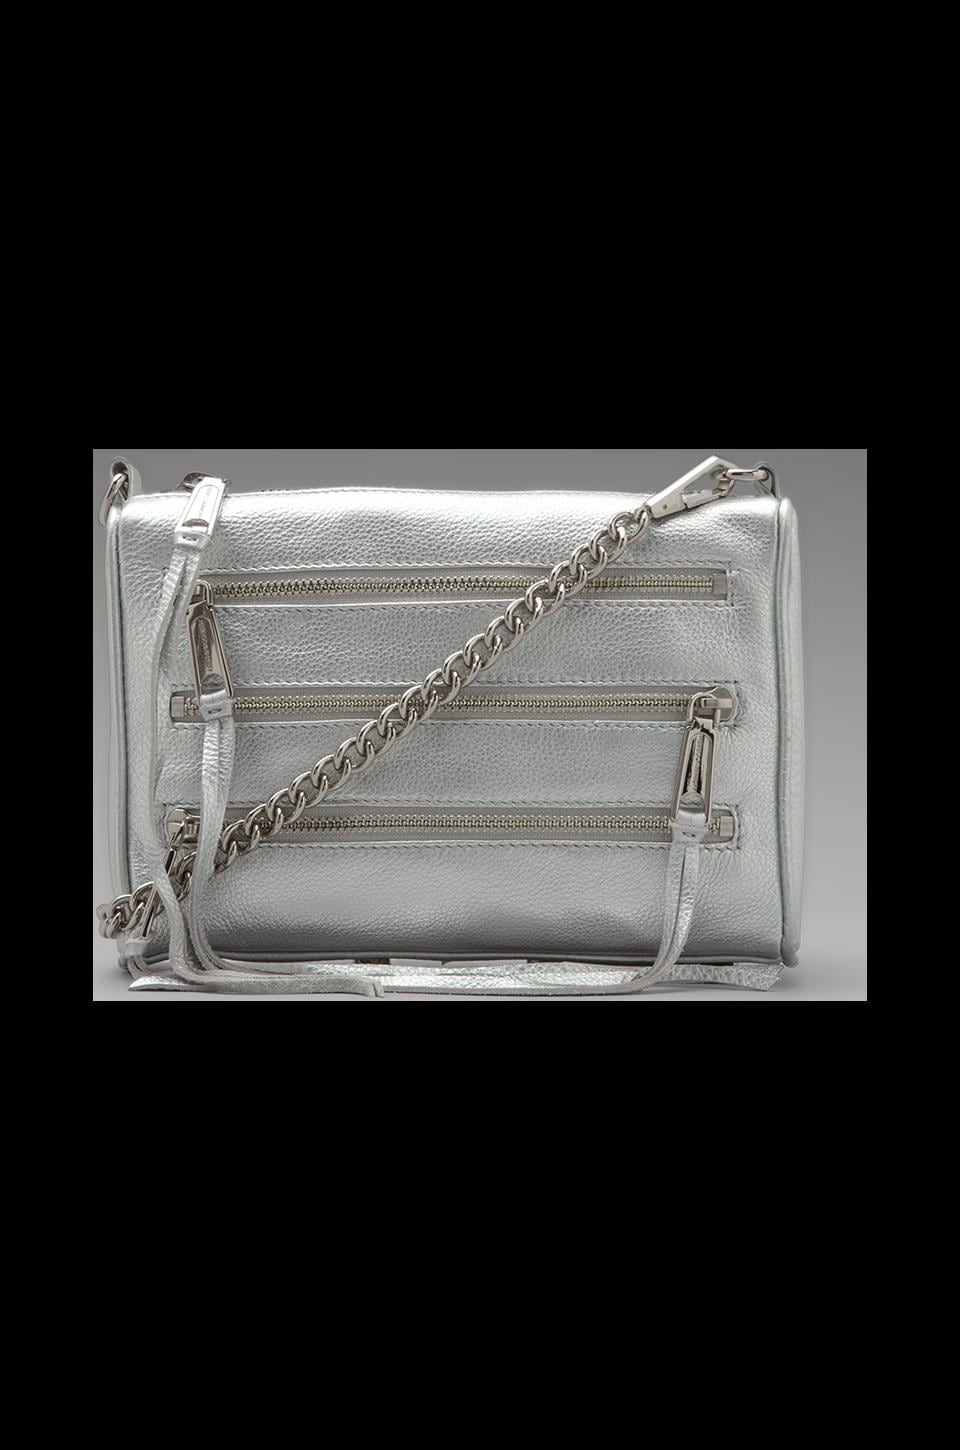 Rebecca Minkoff Mini 5 Zip Clutch in Silver